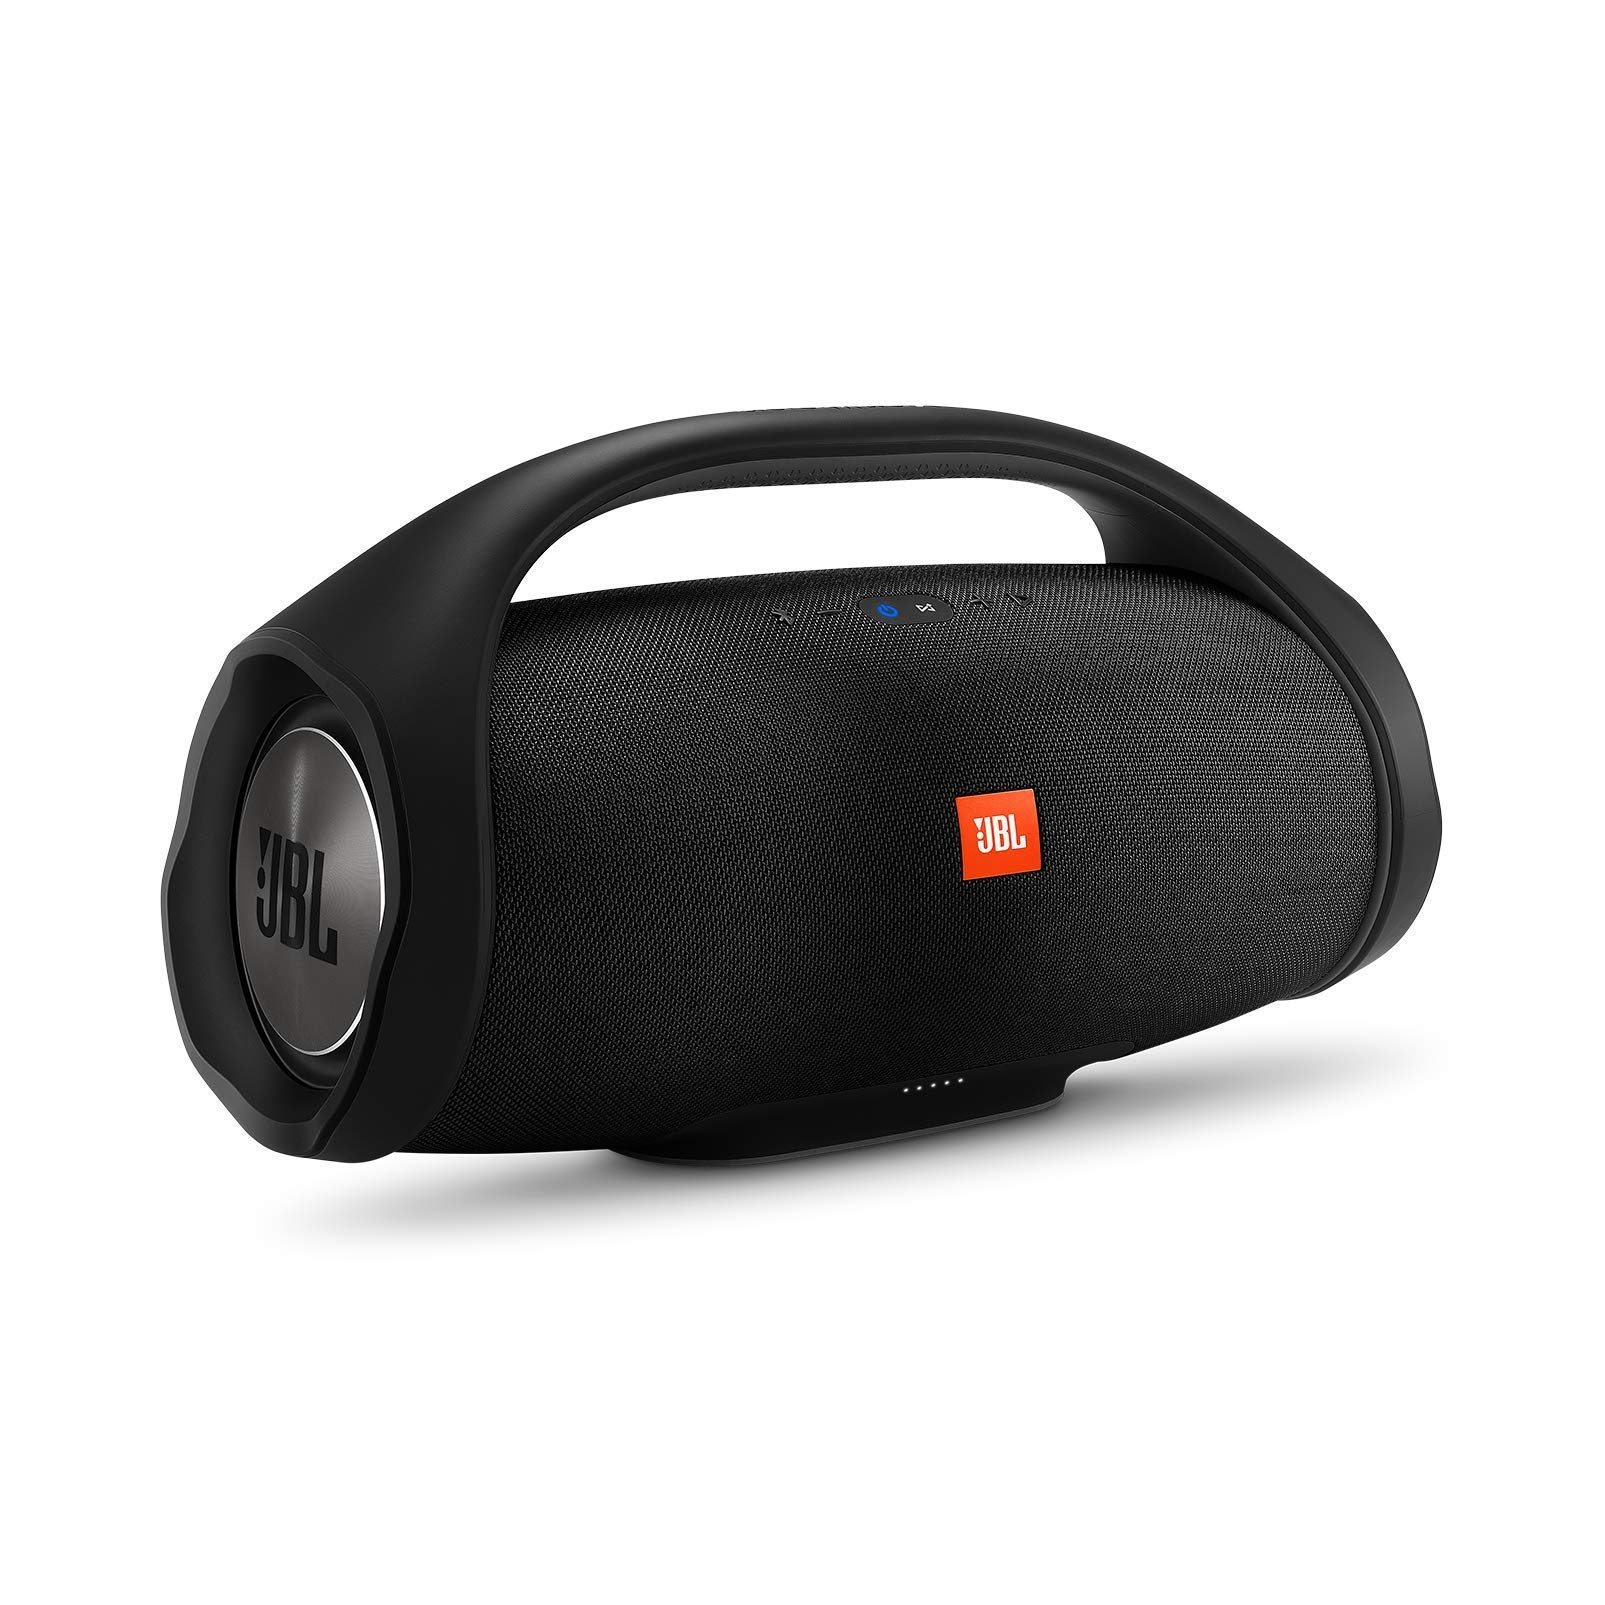 JBL Boombox Portable Bluetooth Waterproof Speaker (Black) (Renewed) by JBL (Image #1)